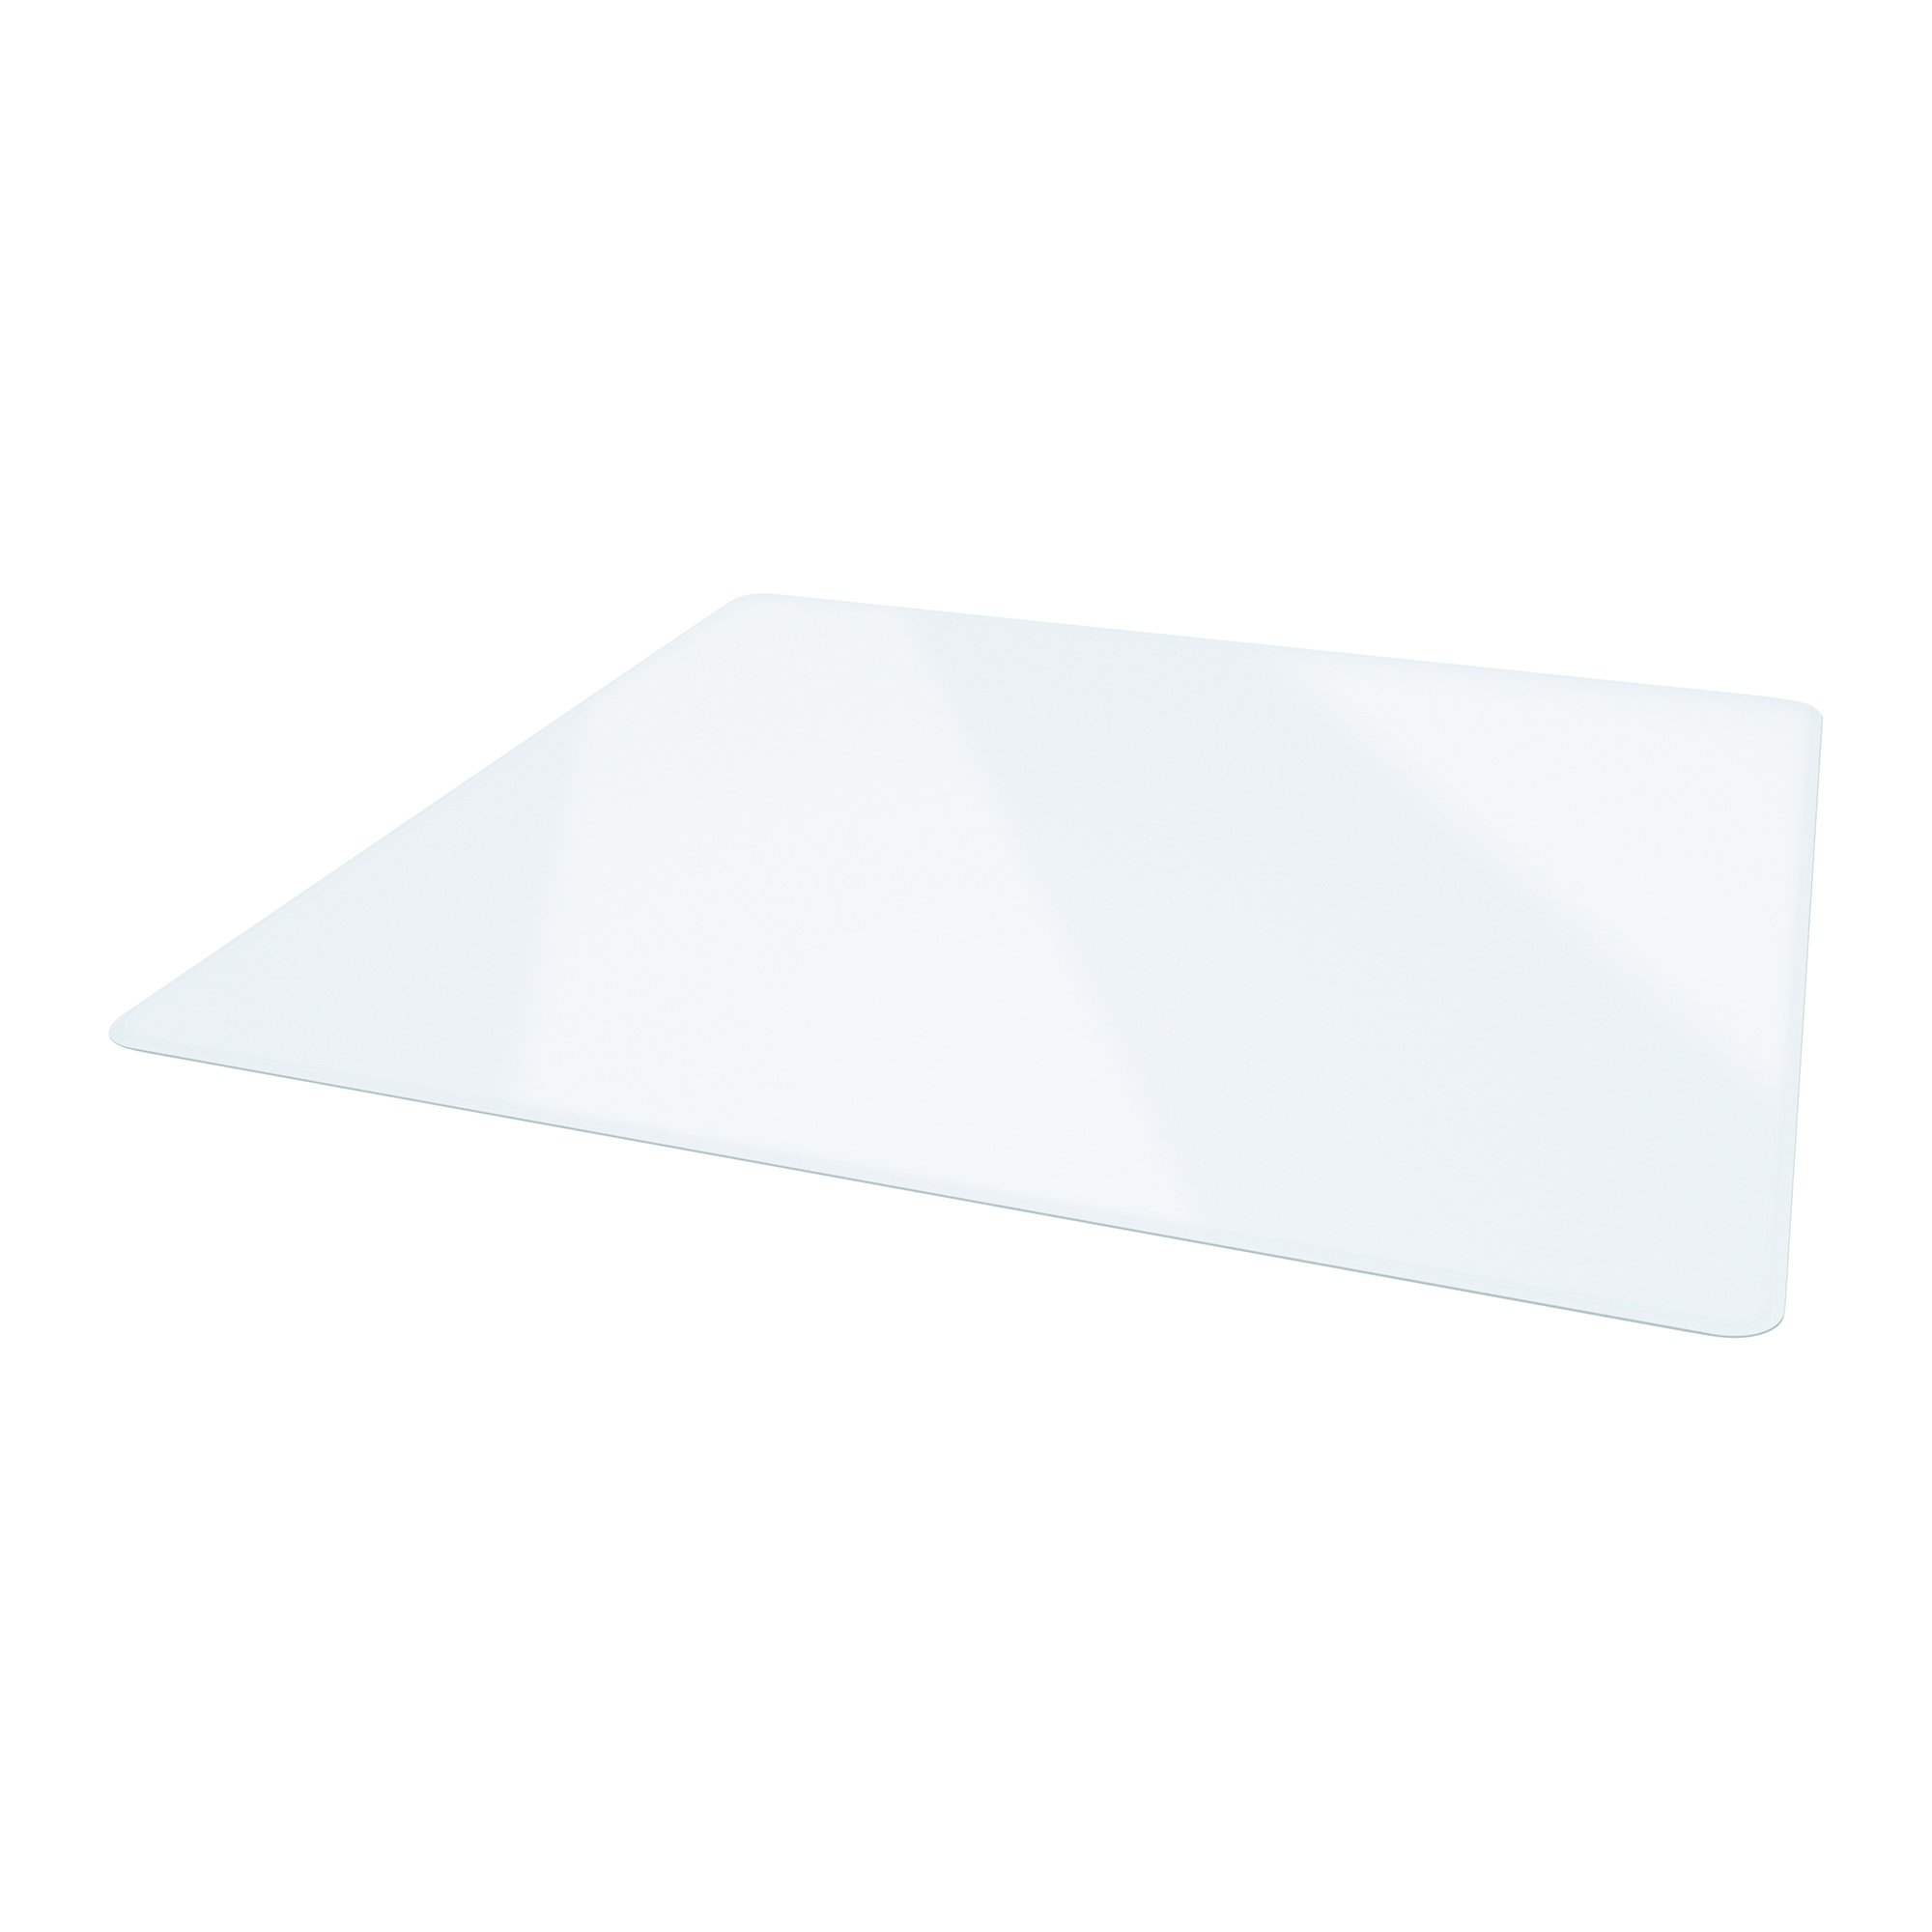 Deflecto Premium Clear Glass Chairmat, Multi-Surface Use, Rectangle, Beveled Edge, 48 x 60 Inches (CMG70434860) by Deflecto